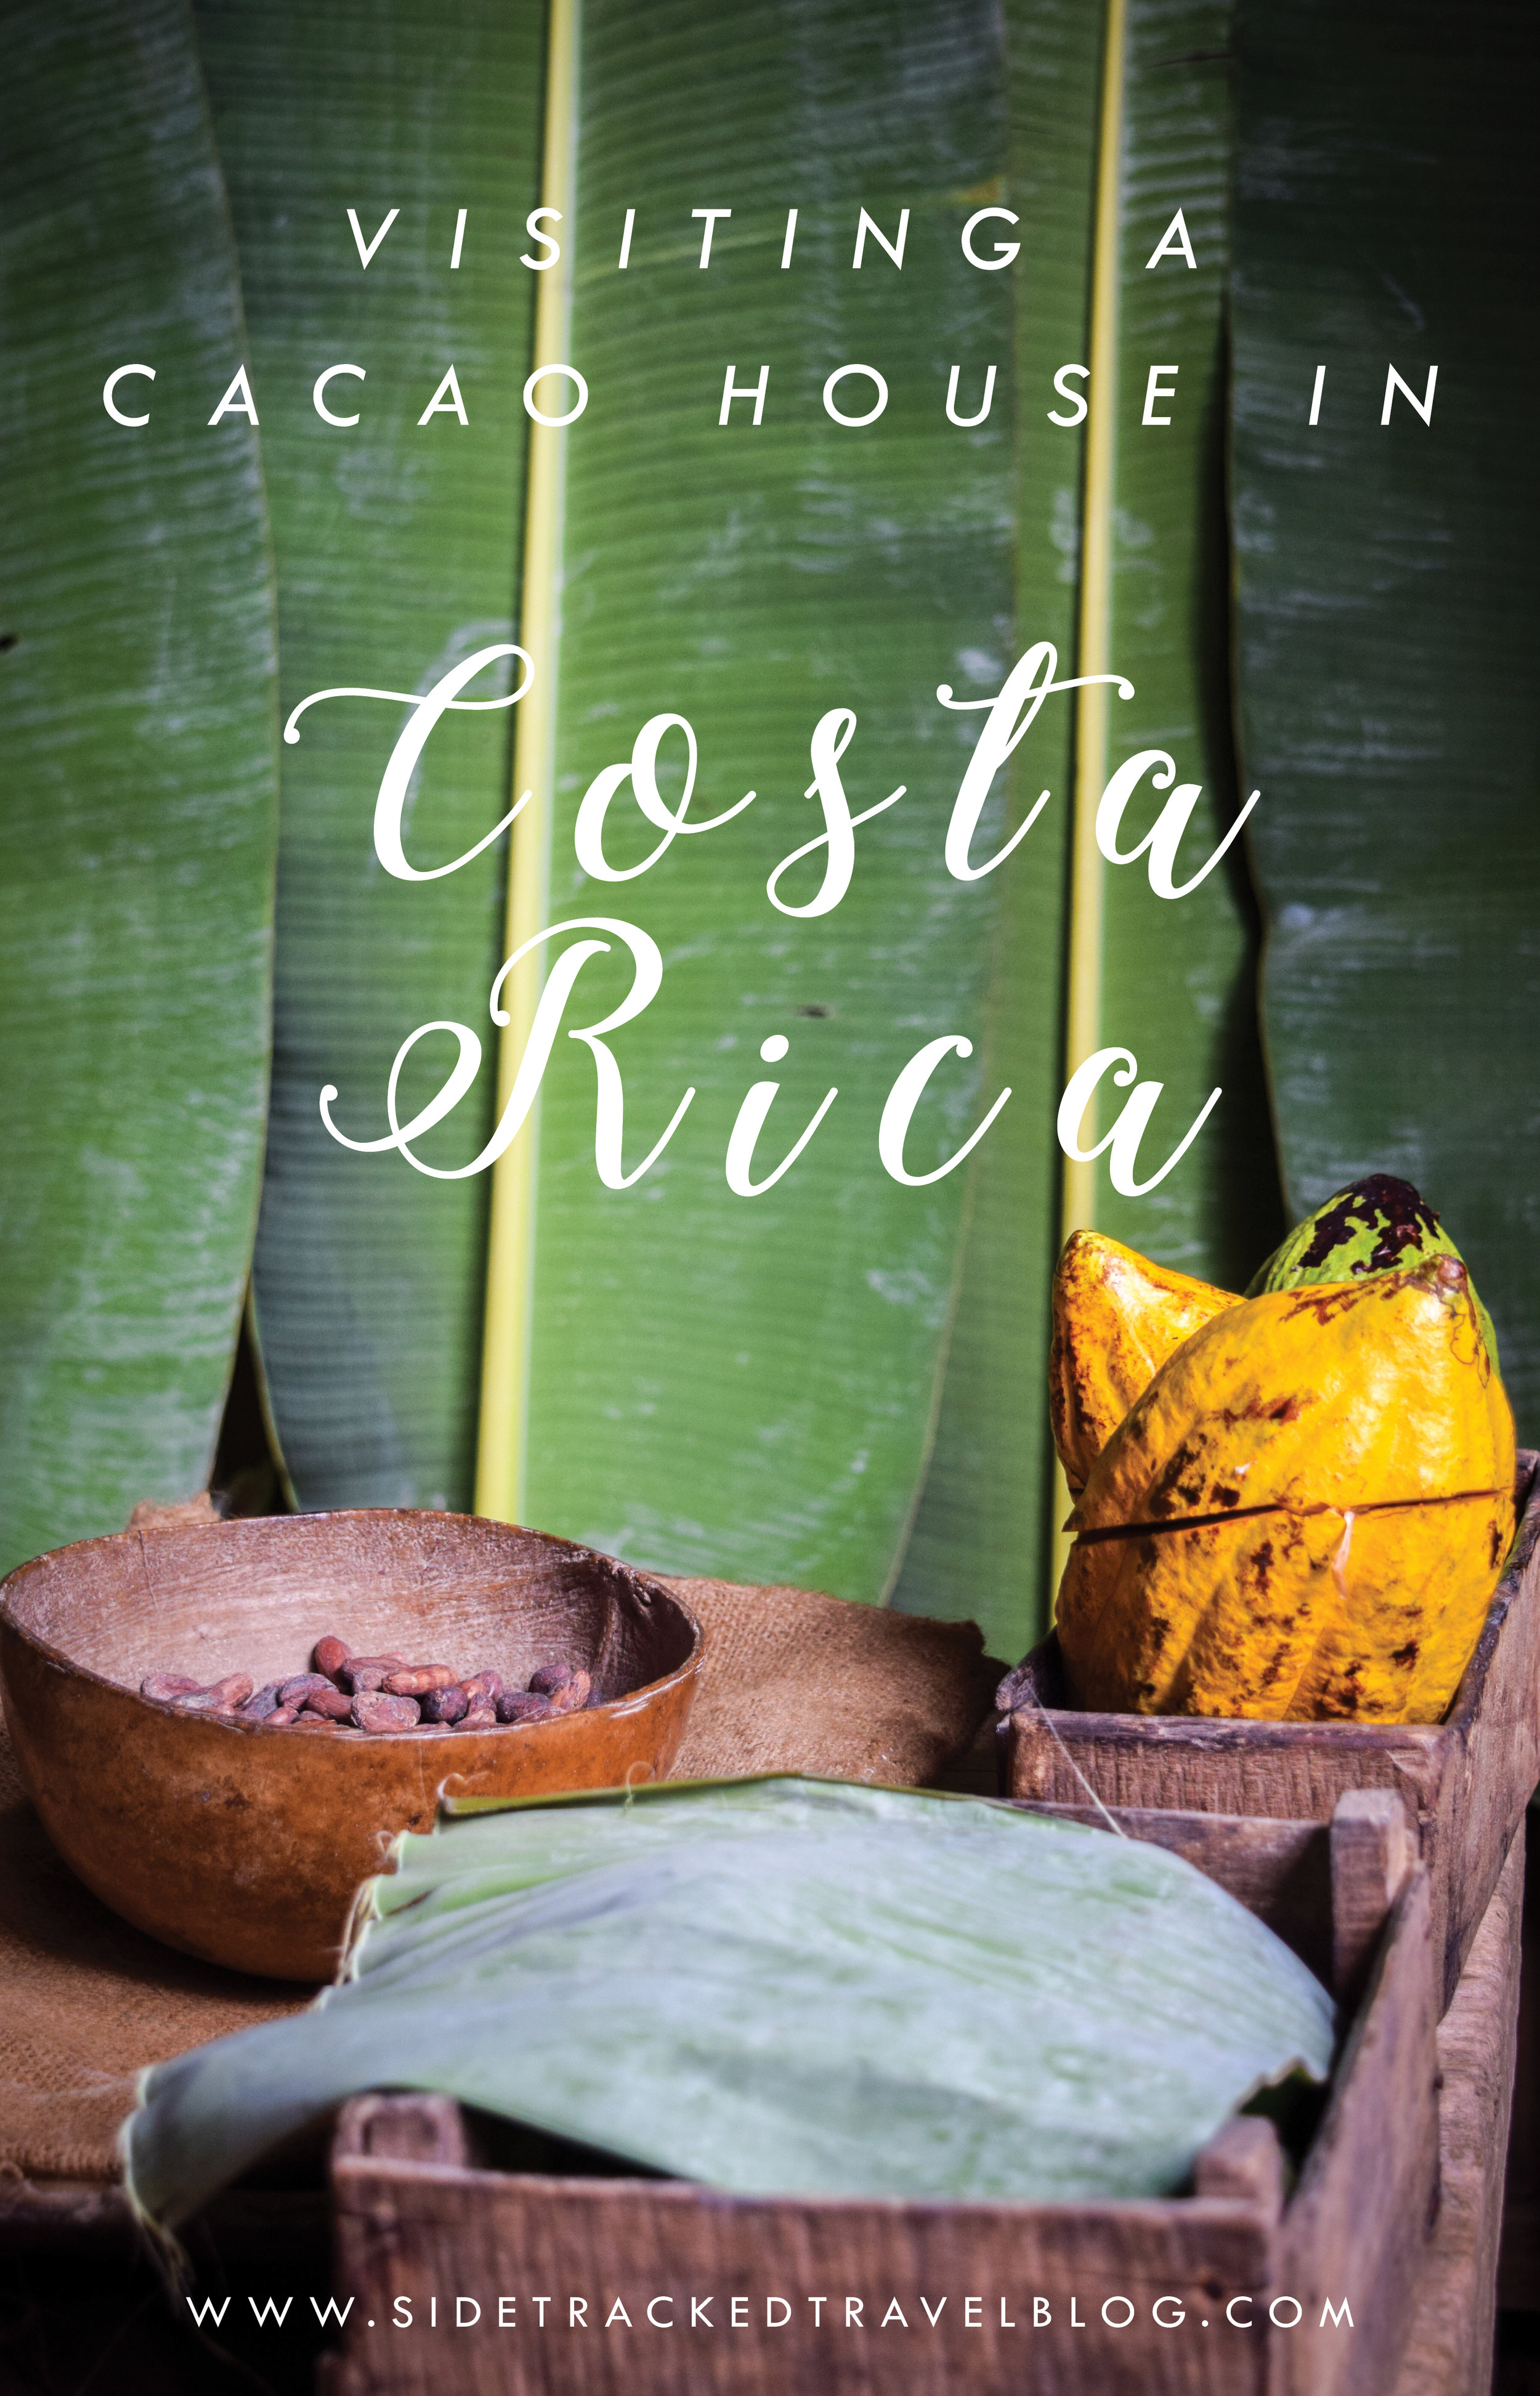 At the cacao house, the stories of chocolate production and the history of the Bribri tribe meet, and through watching the demonstration and learning about the industry, you'll find out just how this plant has shaped the history of Costa Rica, and is still shaping society today.